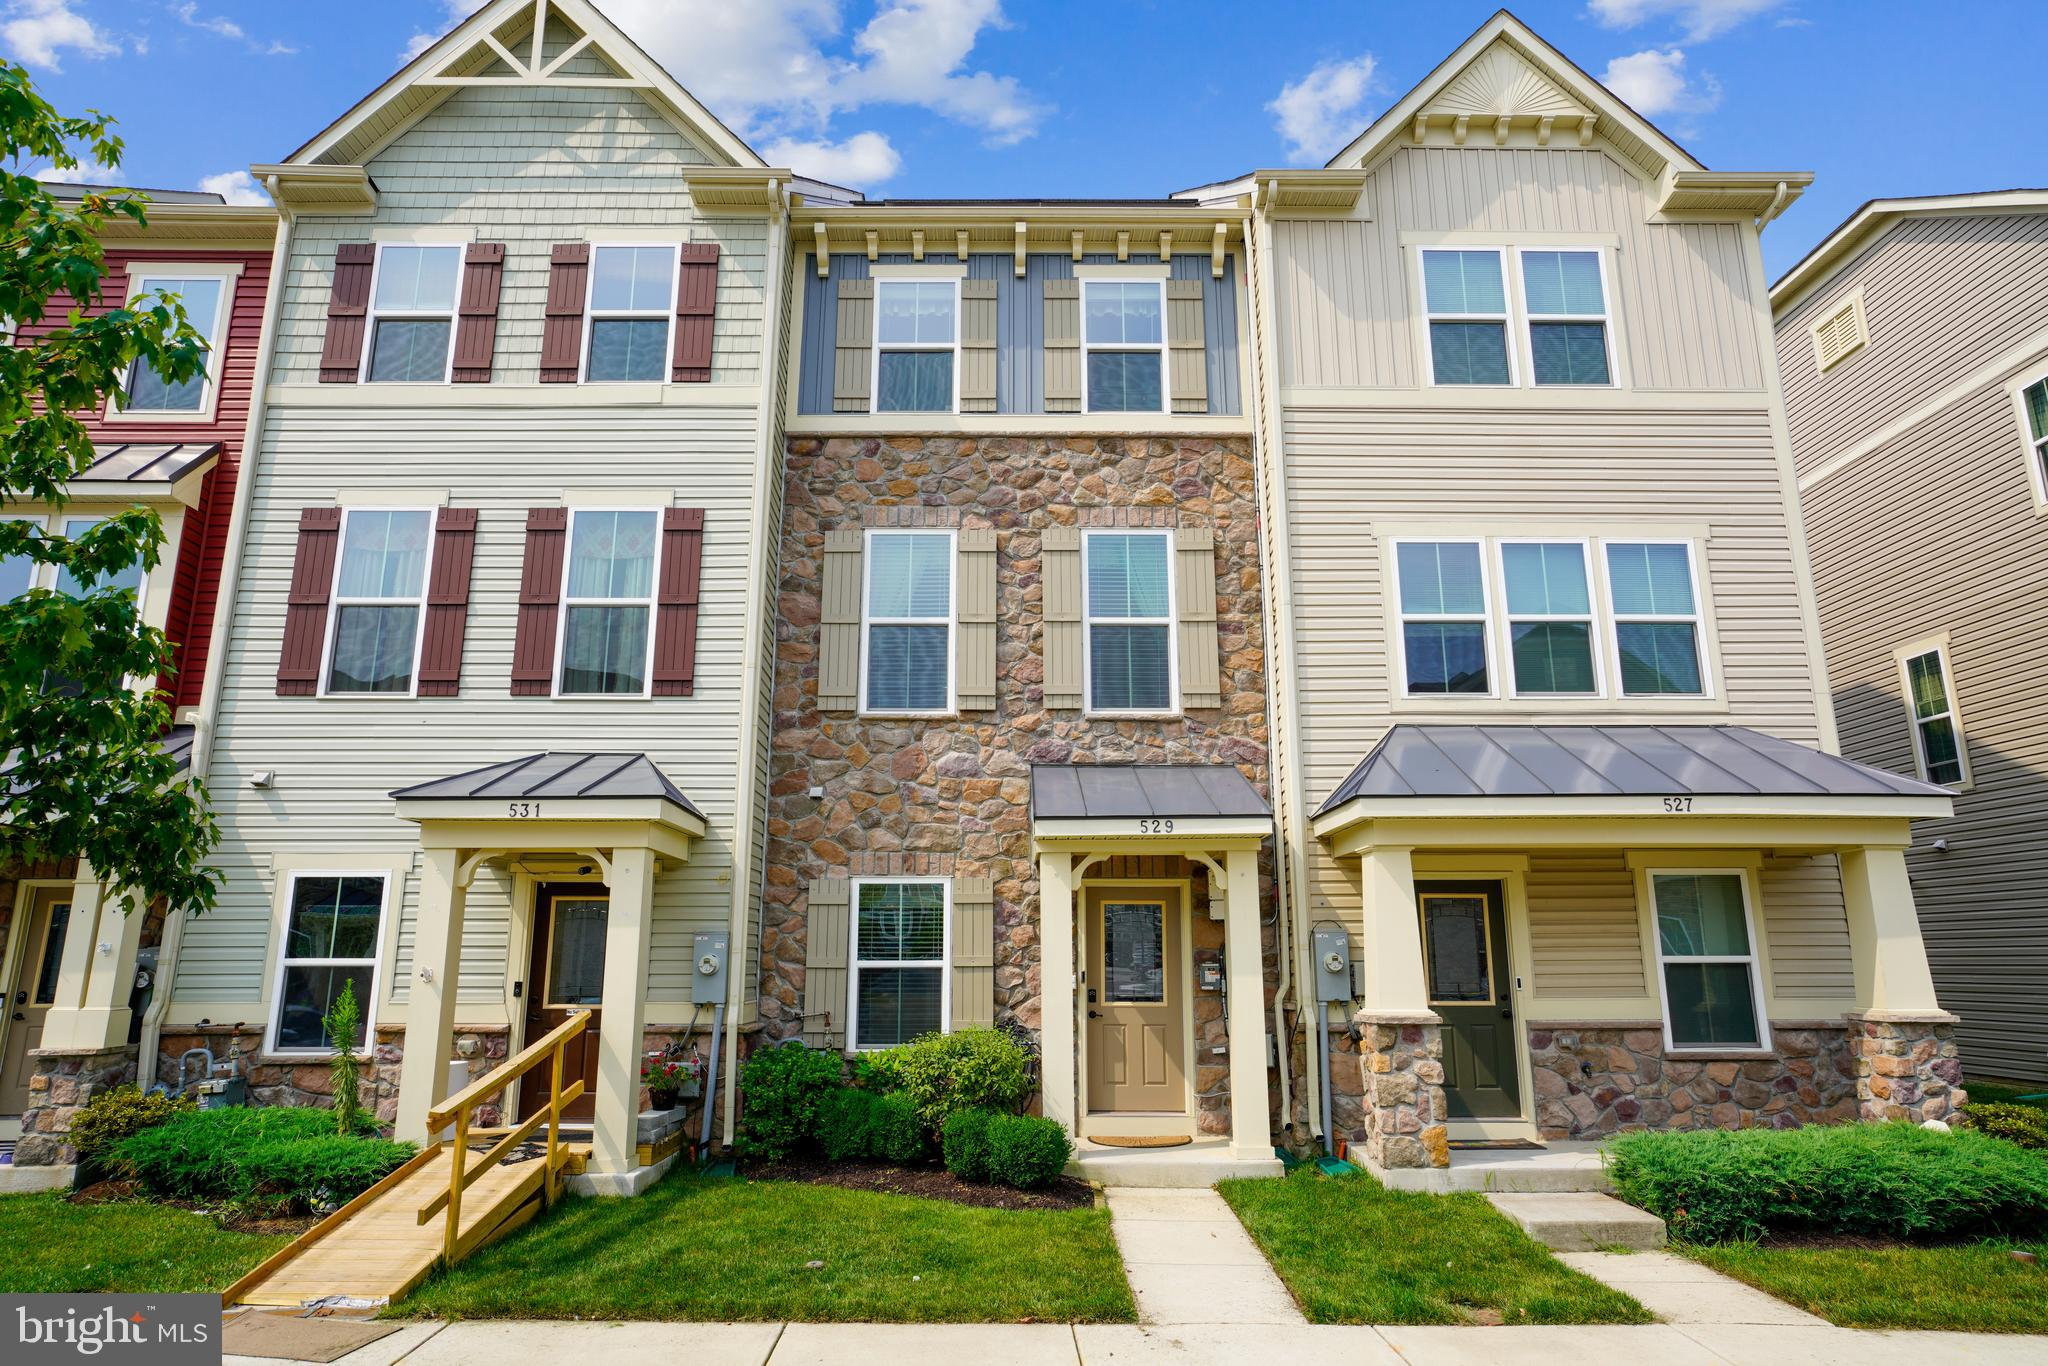 Creekside Village is one of the most sought-after luxury townhome communities in Anne Arundel County